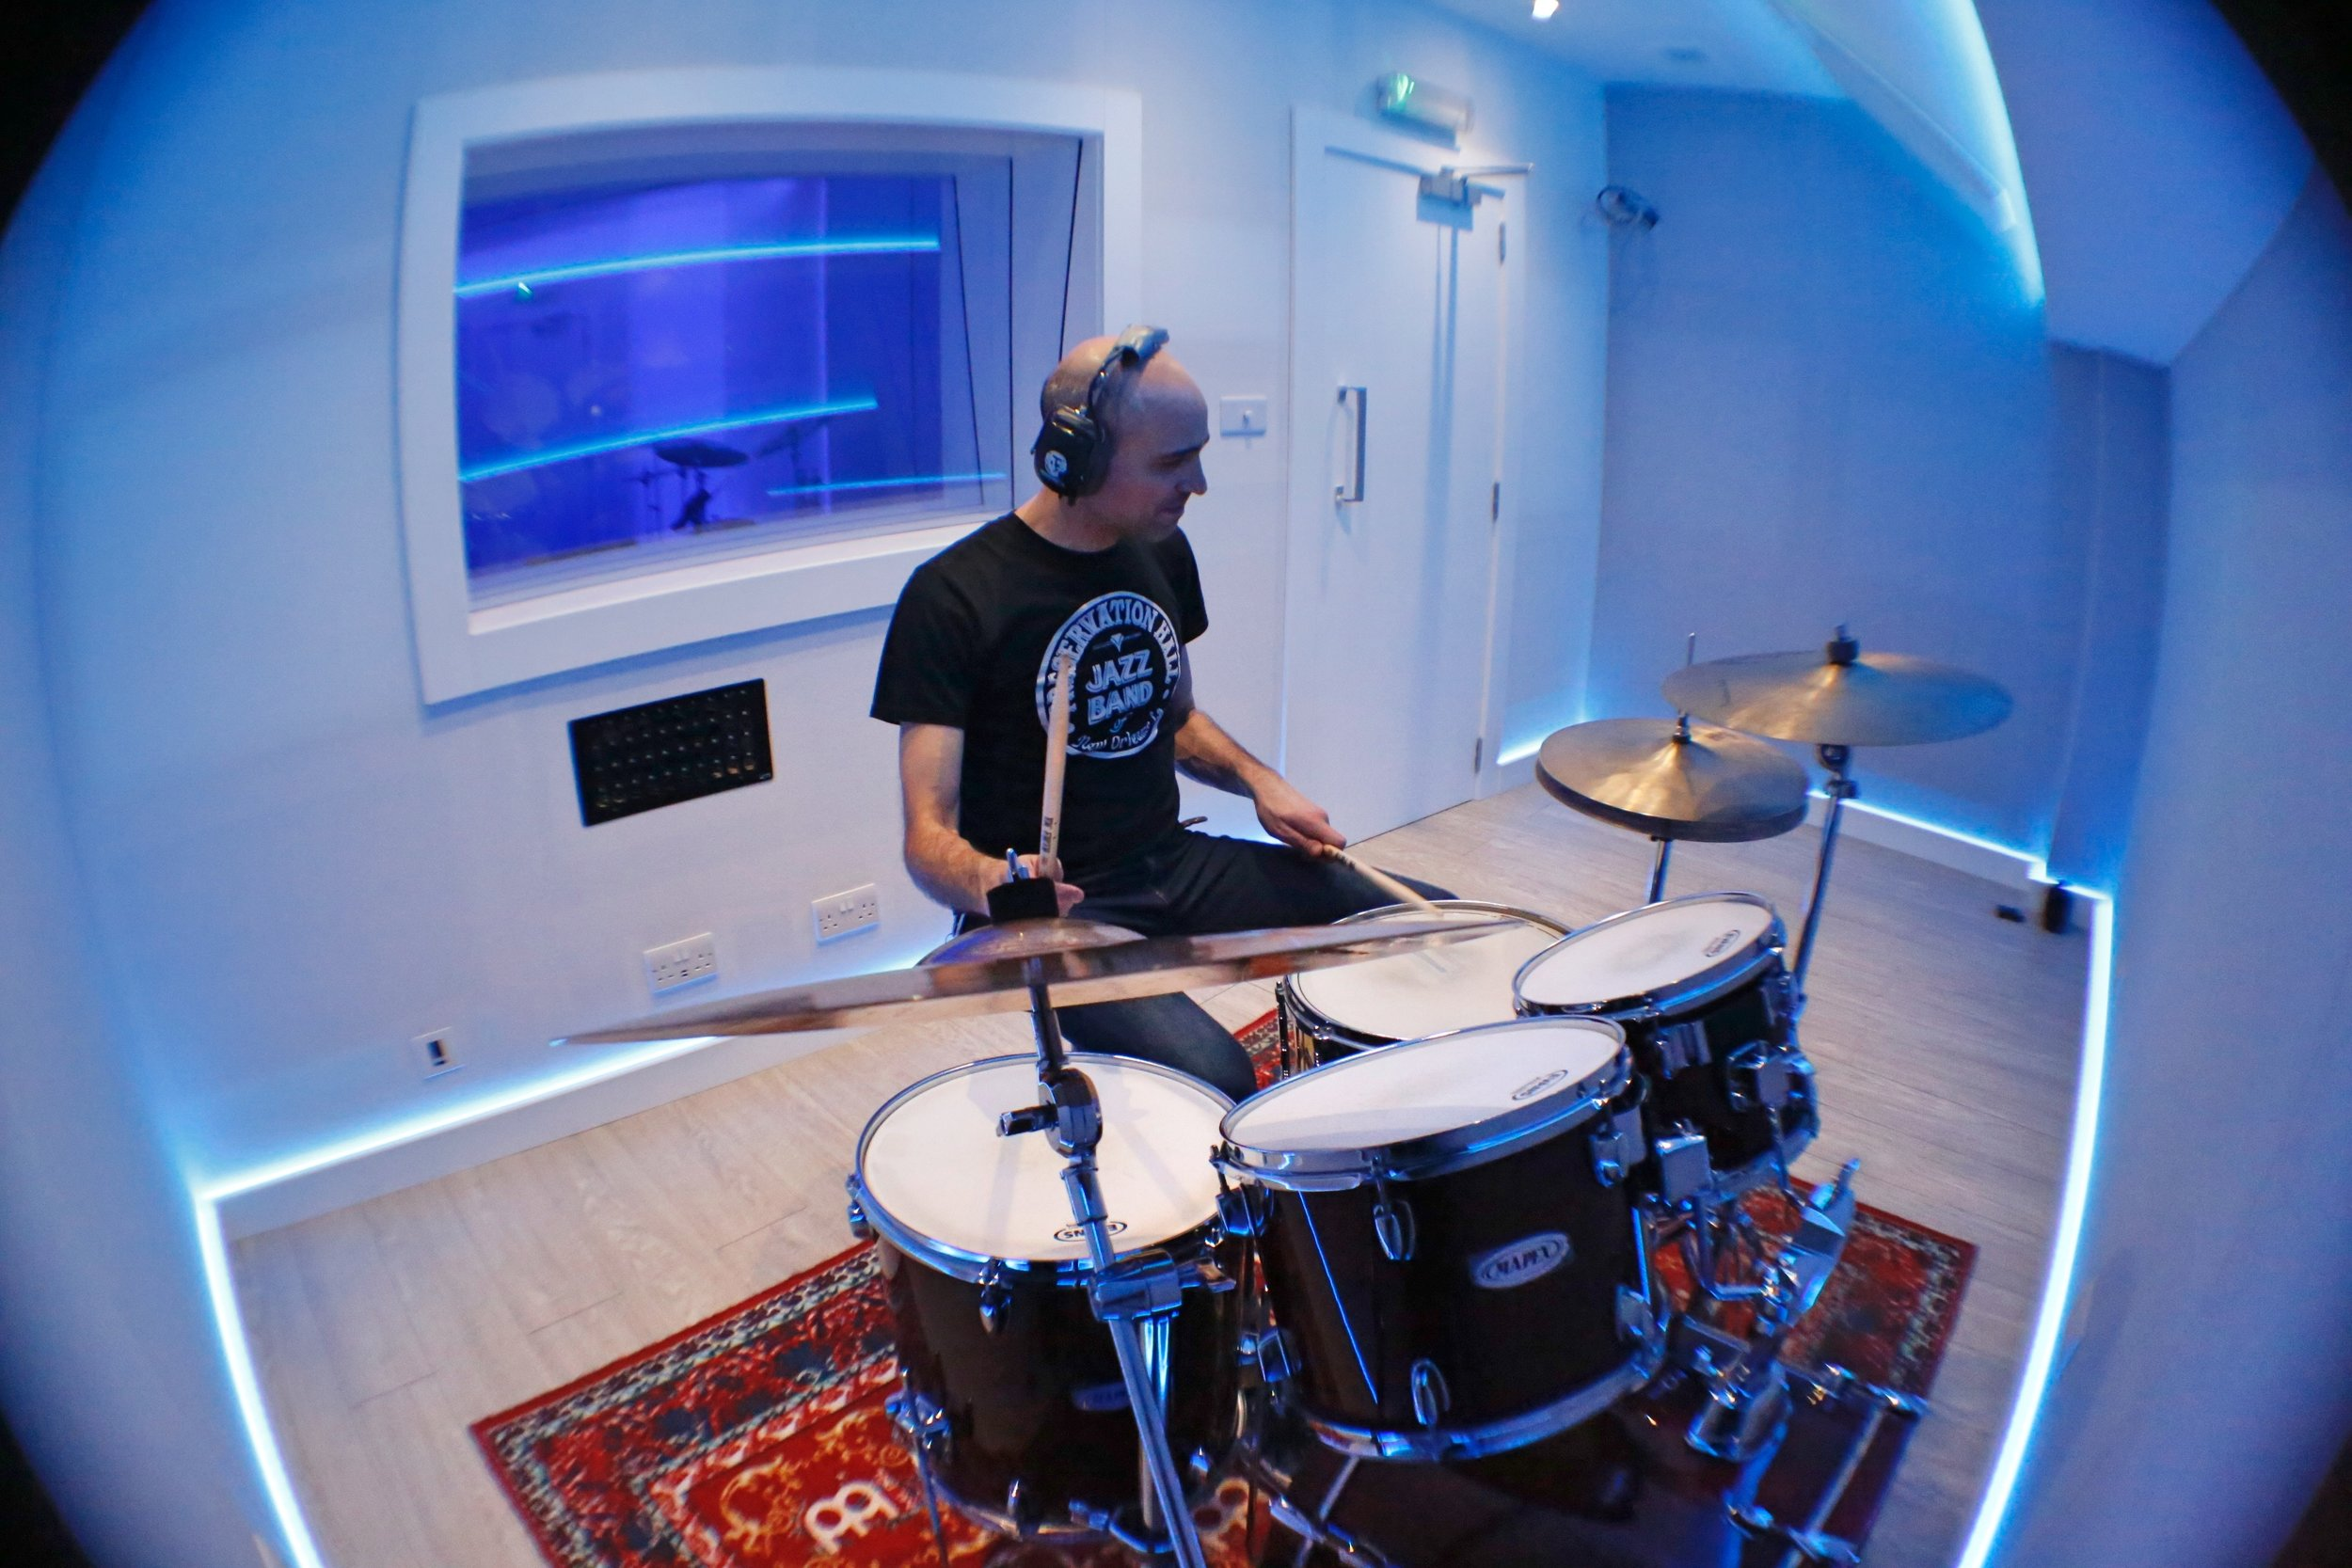 DRUM PRACTICE - Practice on a real kit.Special deal on 4 hour packs.Gift vouchers available.